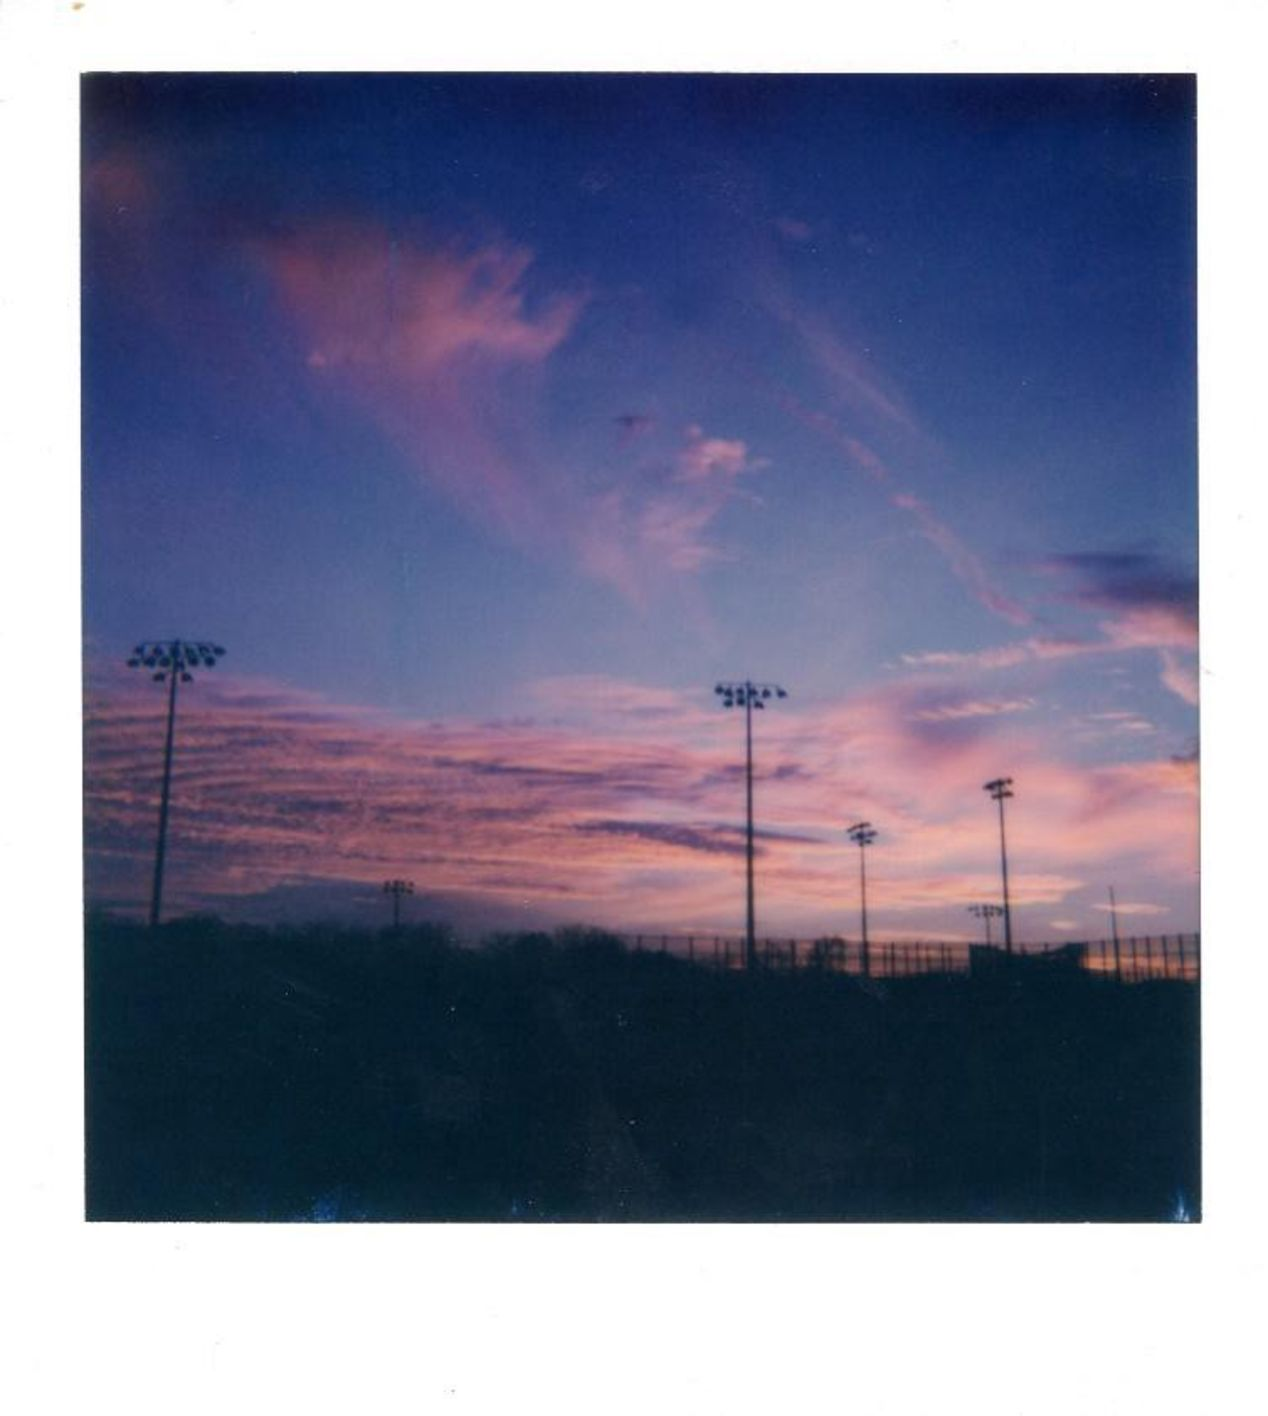 Photo taken at a local park, where I received several strange looks and a few questions about my Polaroid 600.